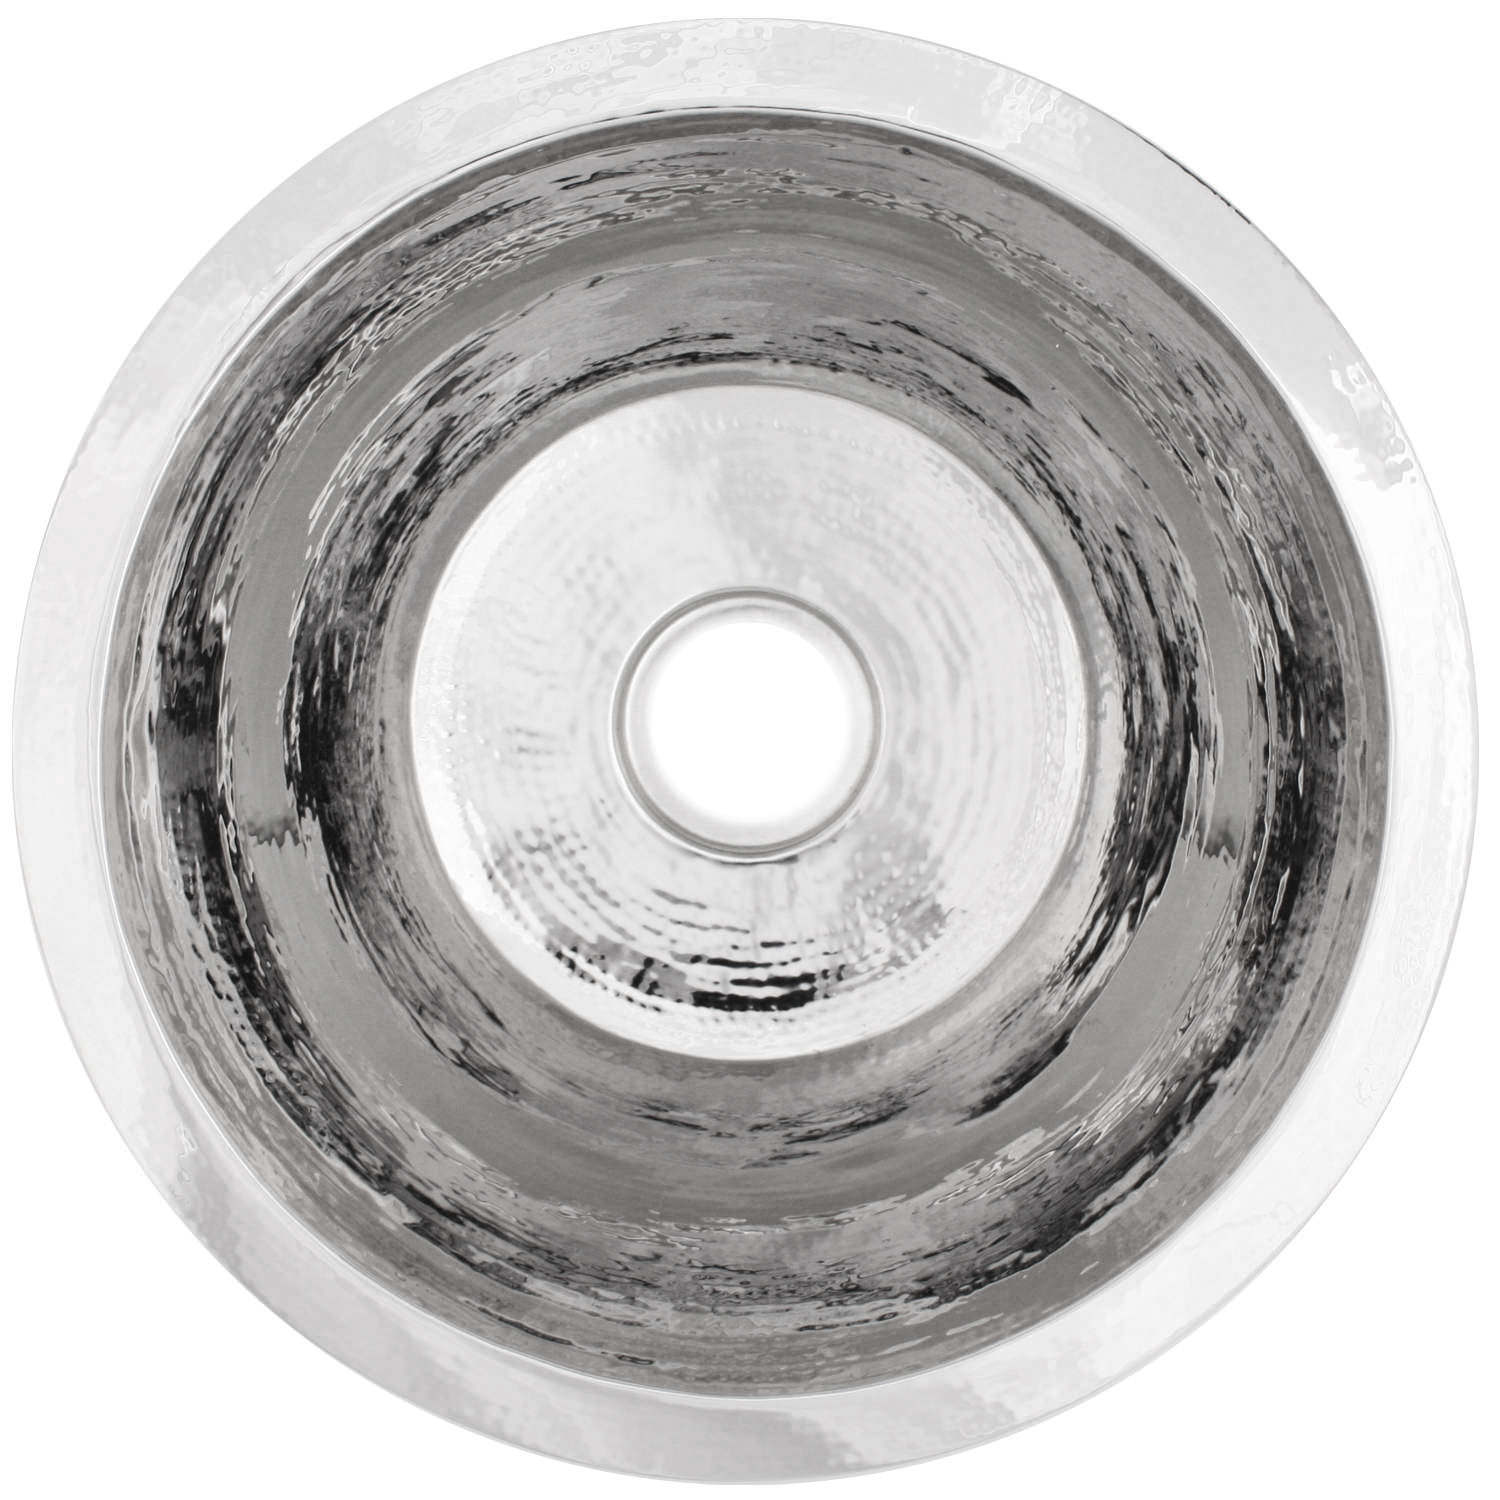 "Linkasink Kitchen Sinks - Linkasink C019-SS Large Flat Round Stainless Steel Sink - 3.5"" Drain - Satin"